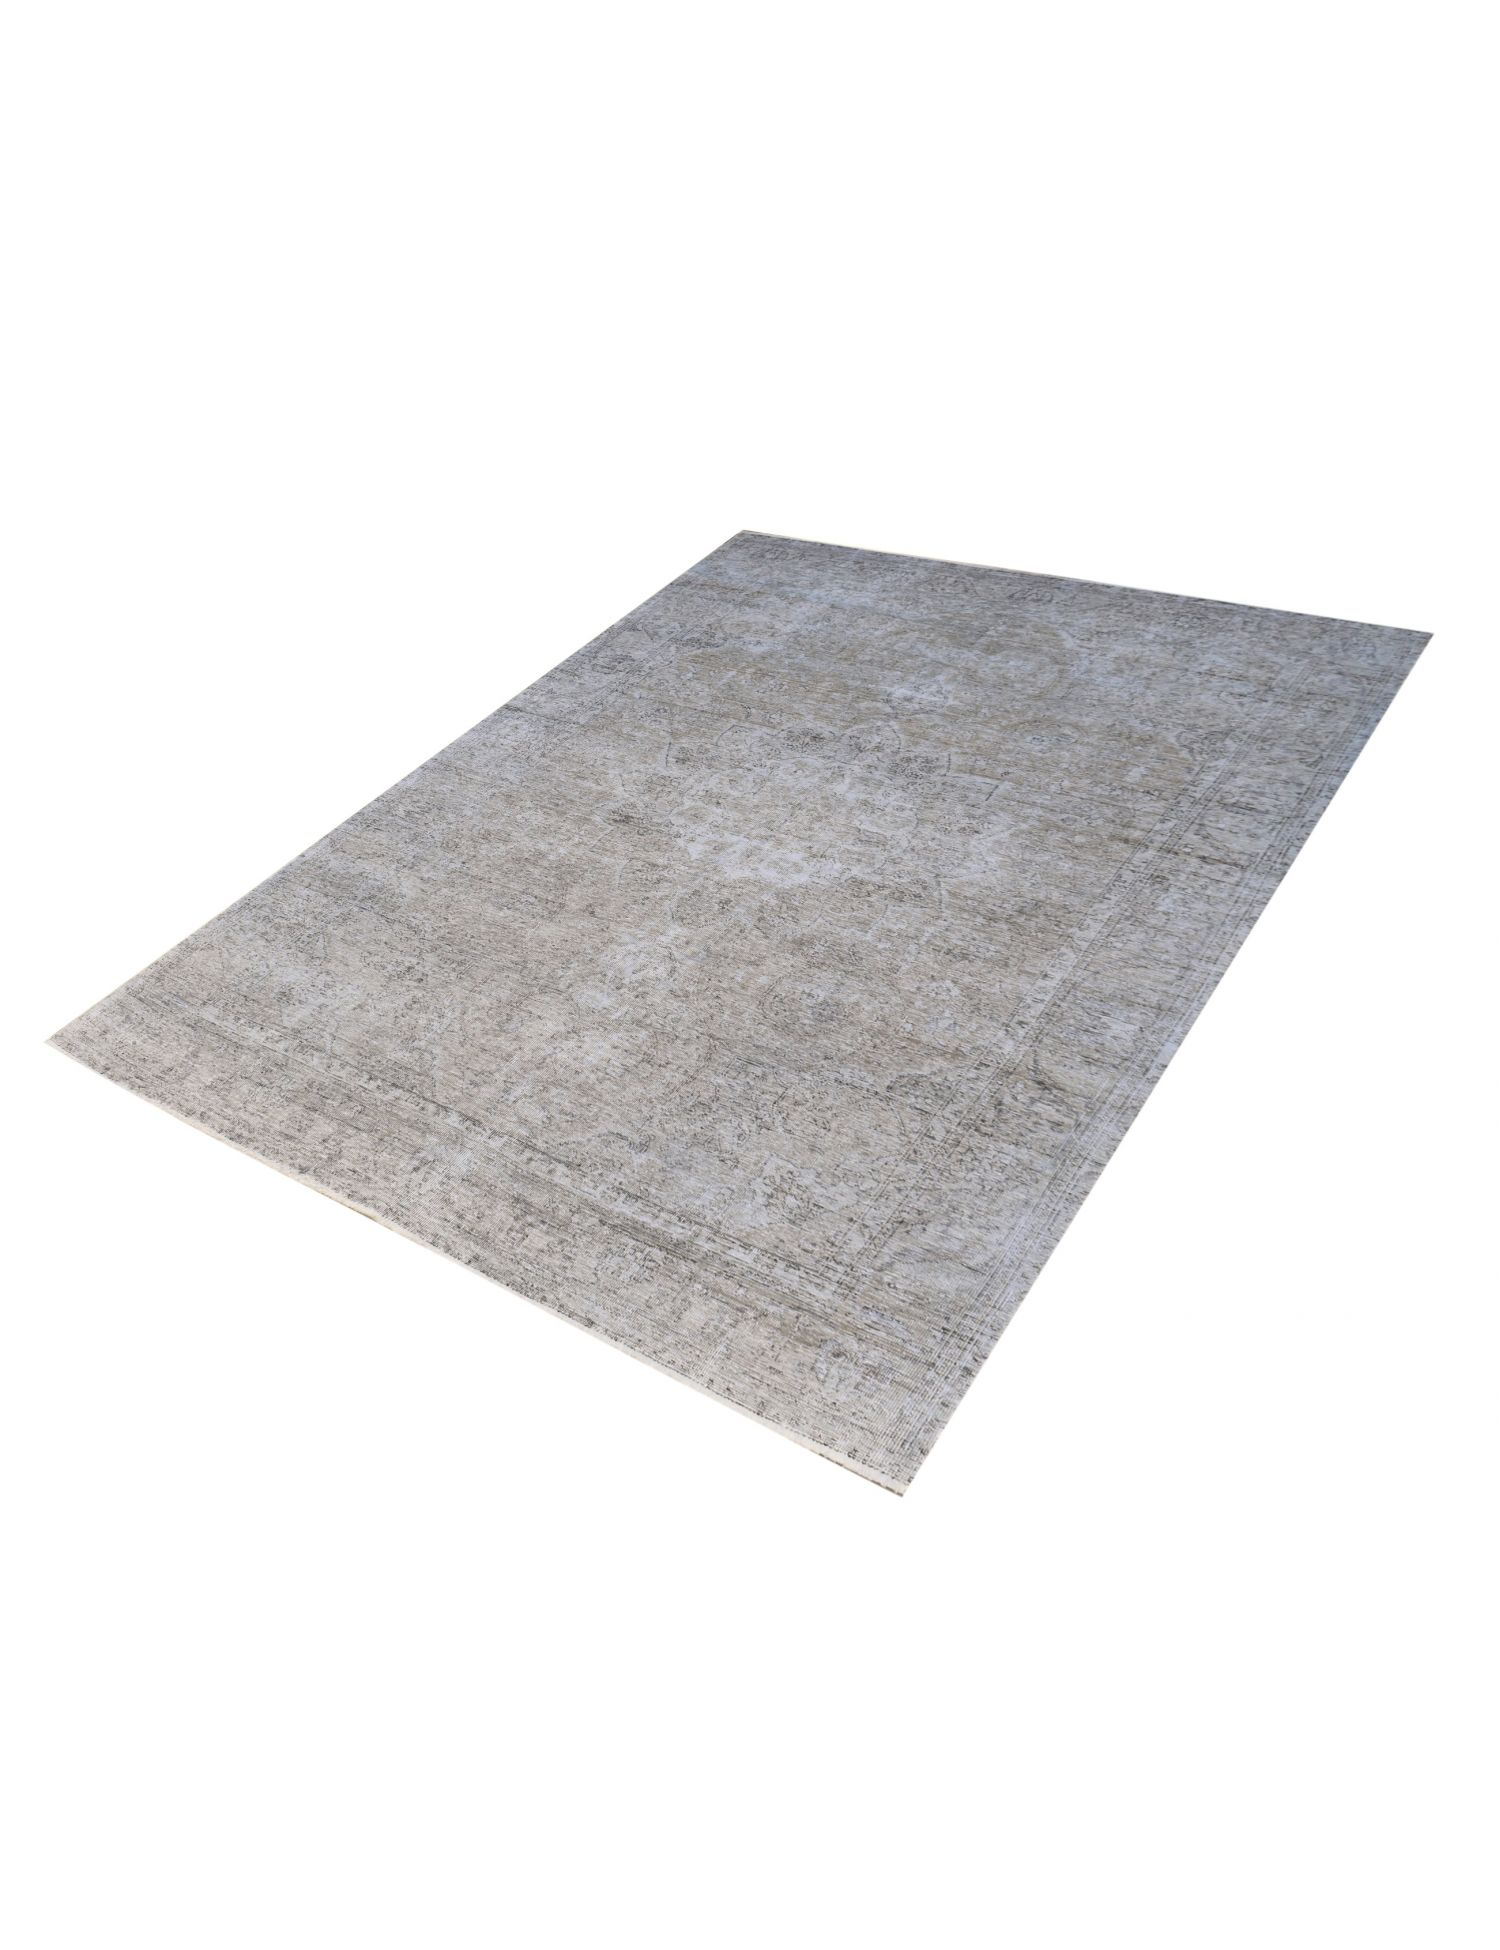 Vintage Carpet  grey <br/>270 x 200 cm